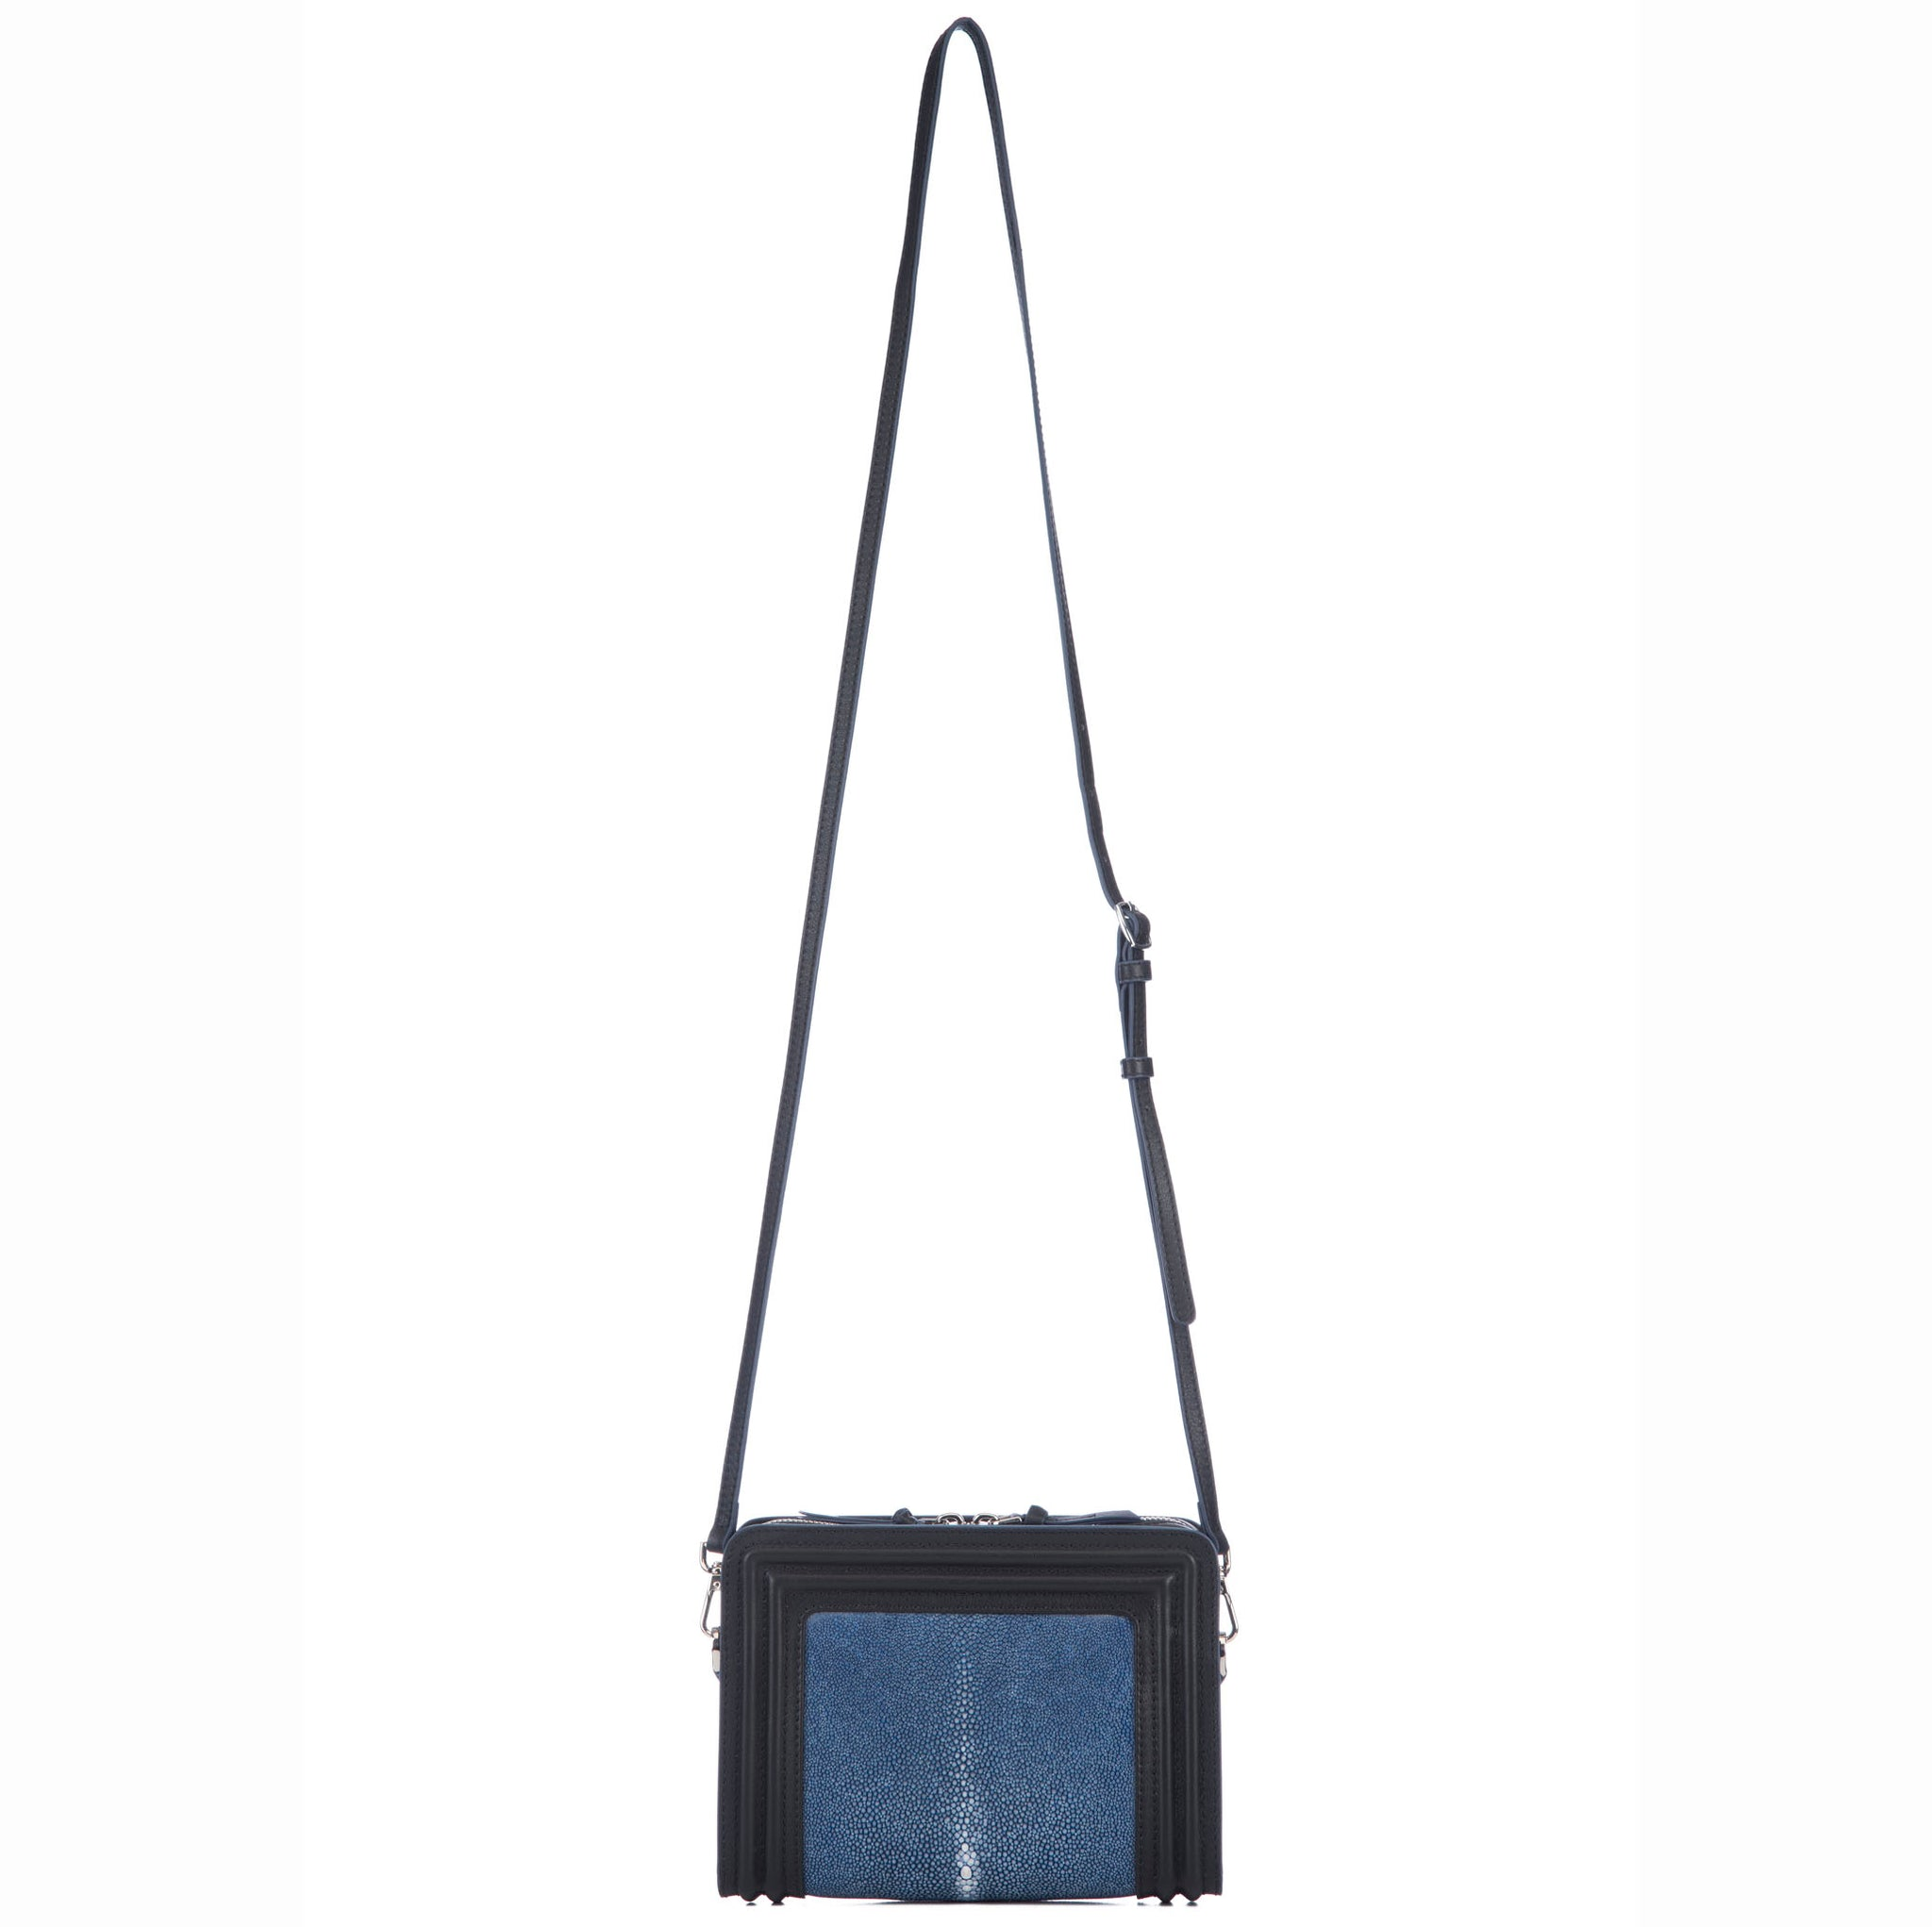 Black Corded Leather Frames Navy Stingray Double Zipper Top Cross Body Bag Shoulder Strap View Nora - Vivo Direct